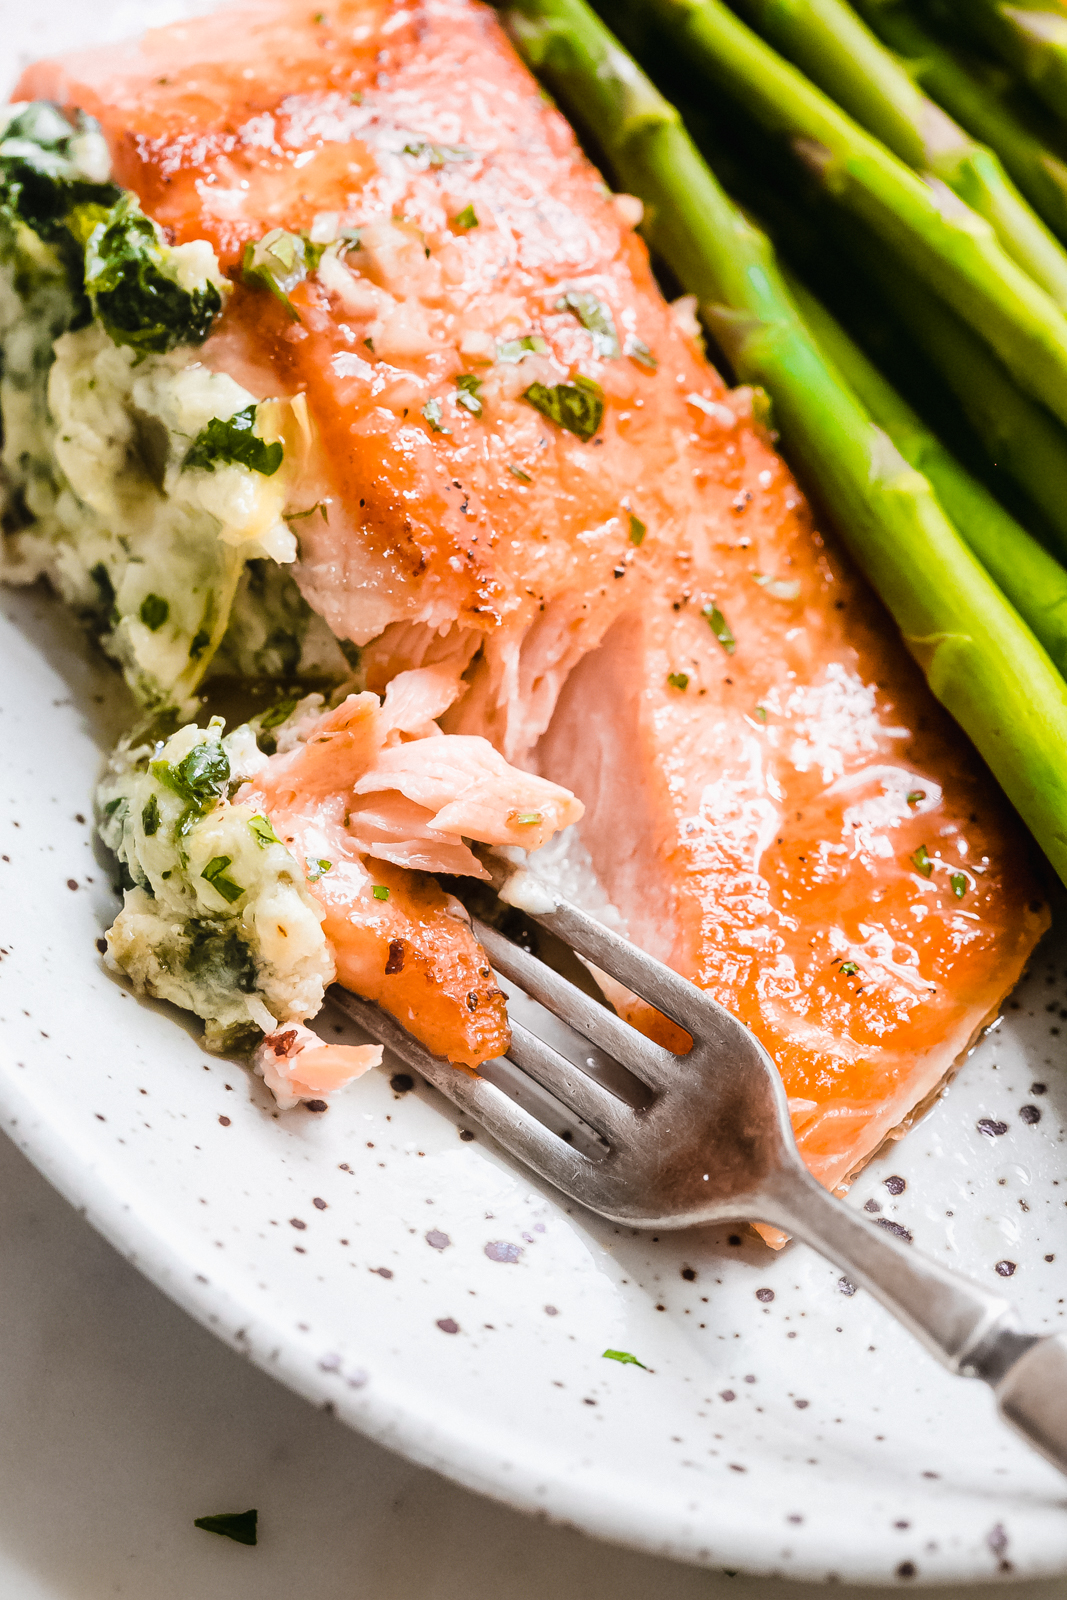 stuffed salmon filet being flaked with a fork